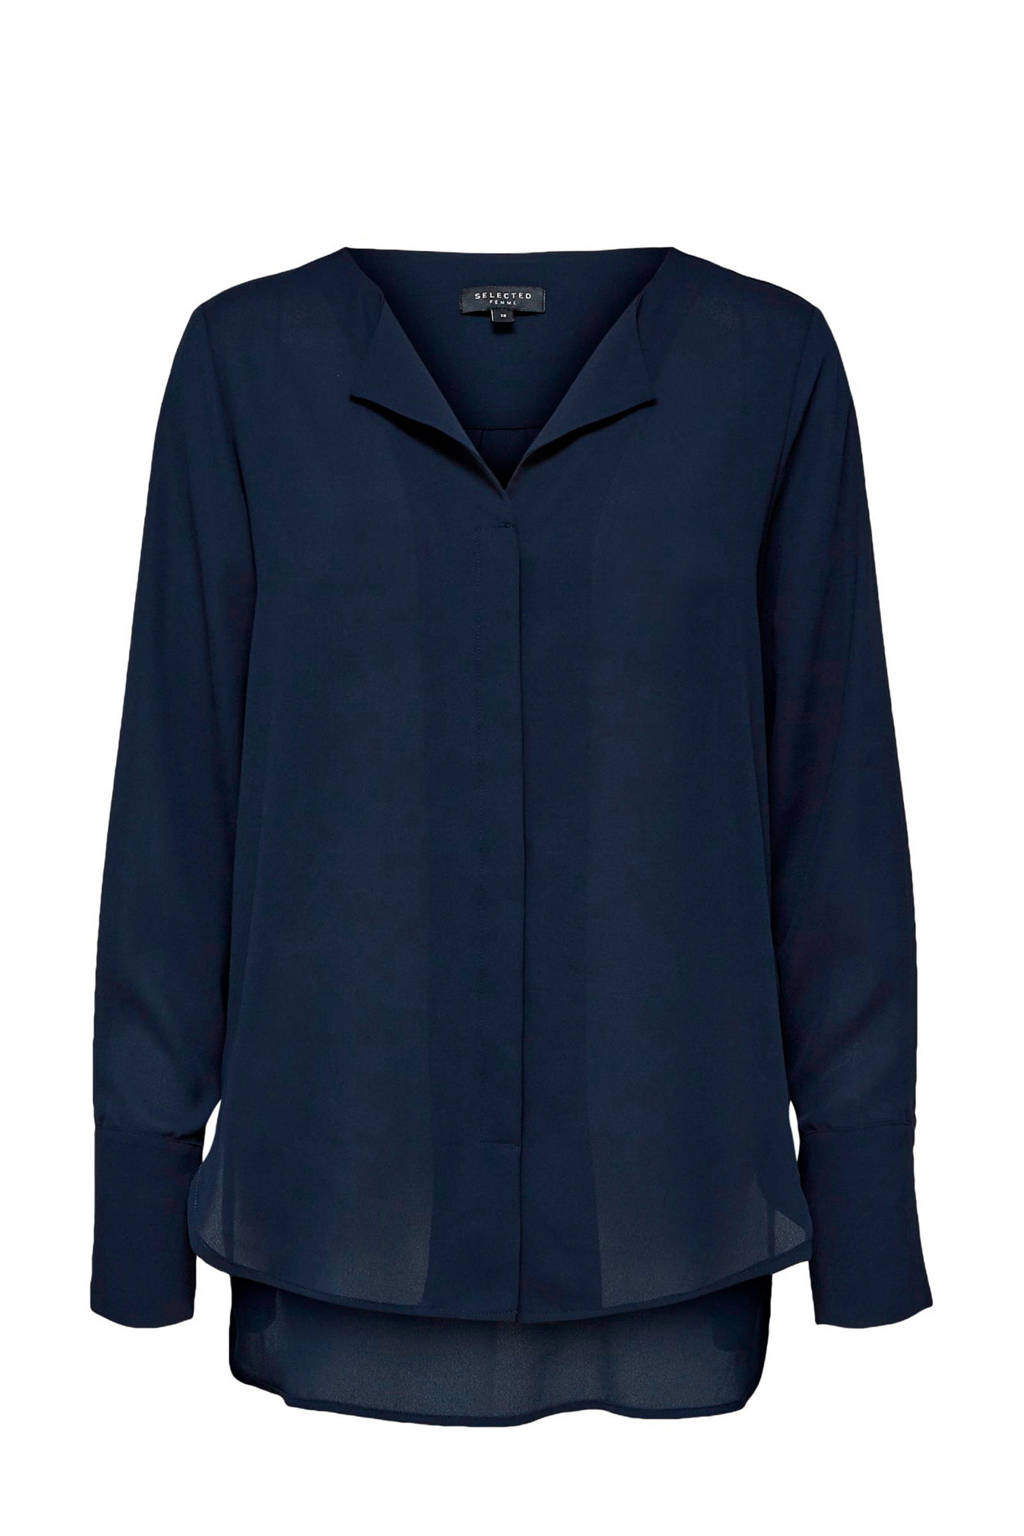 SELECTED FEMME blouse donkerblauw, Donkerblauw